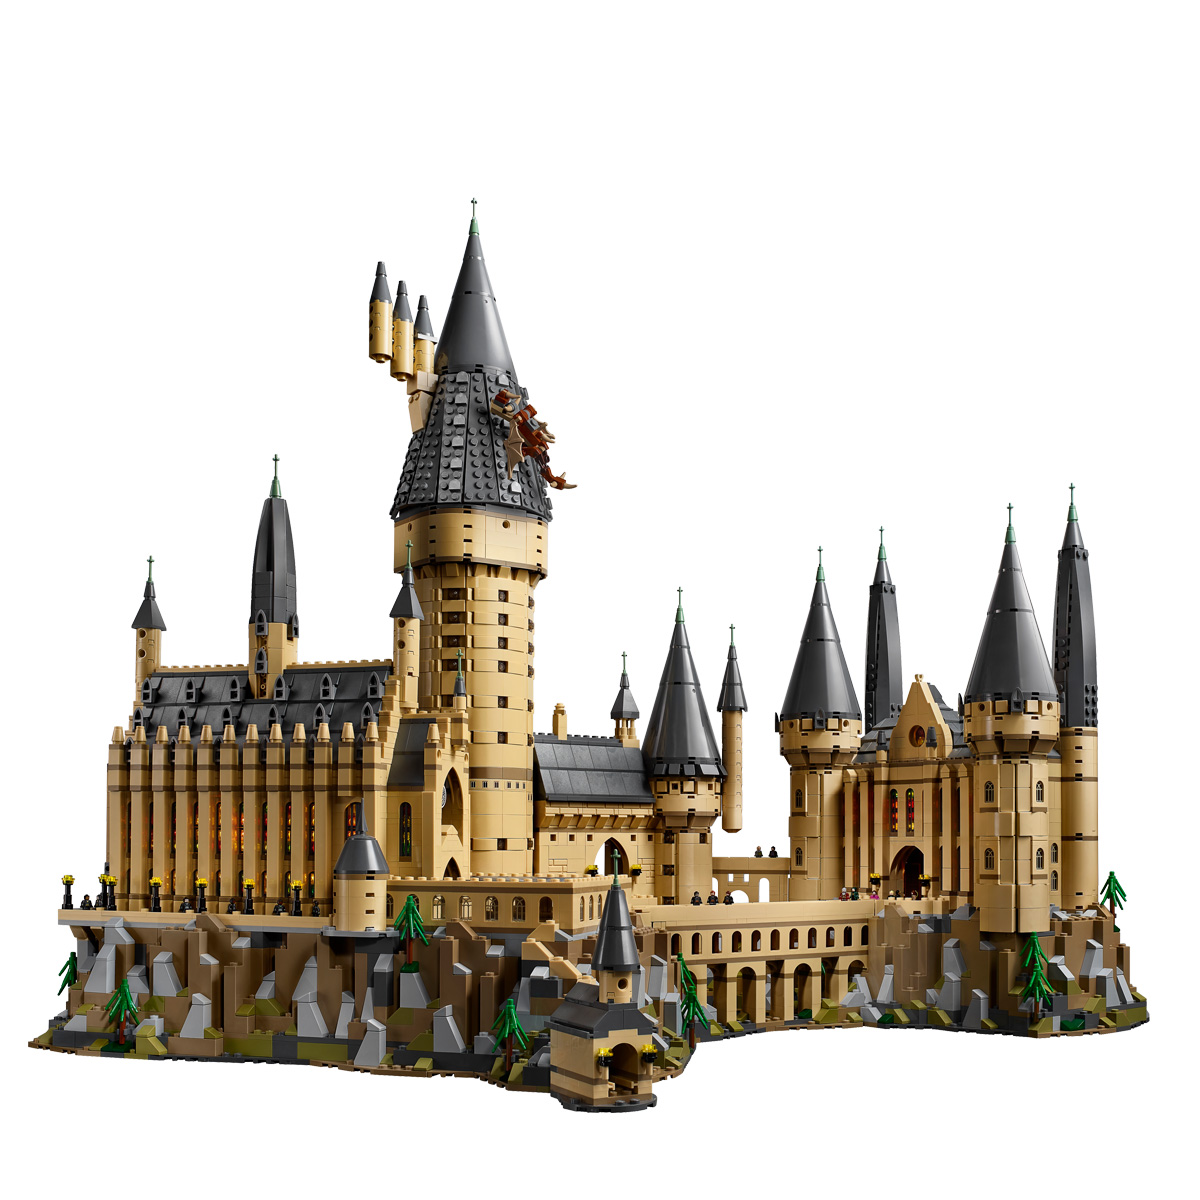 LEPIN 16060 Hogwarts Castle Building Bricks Set